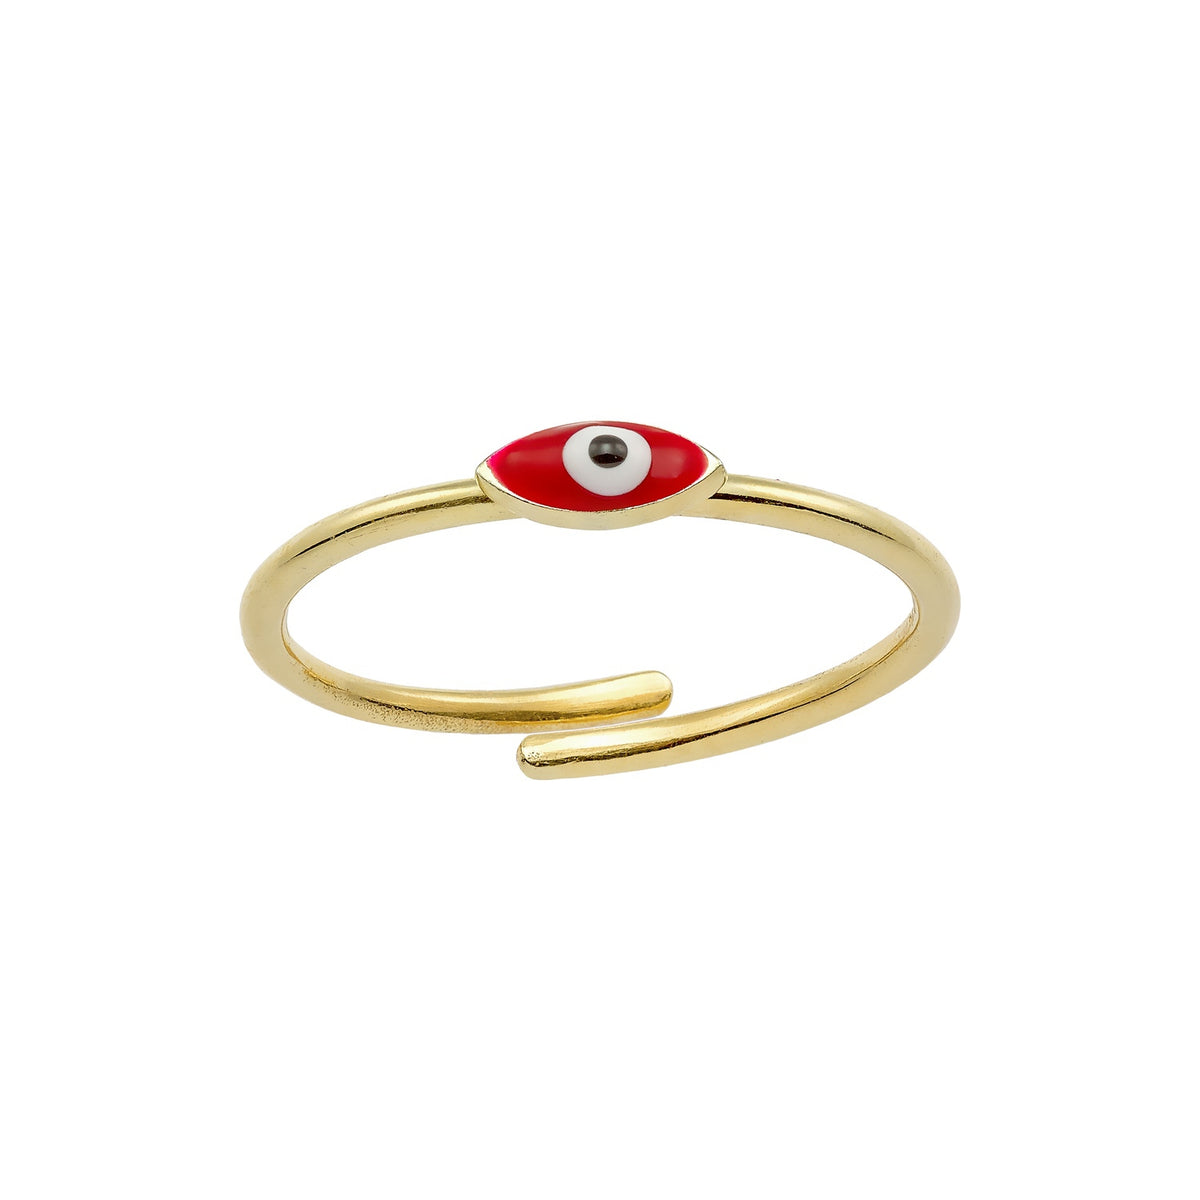 MATI | Tiny Marquise Ring | Red Enamel | 18K Gold Plated 925 Silver